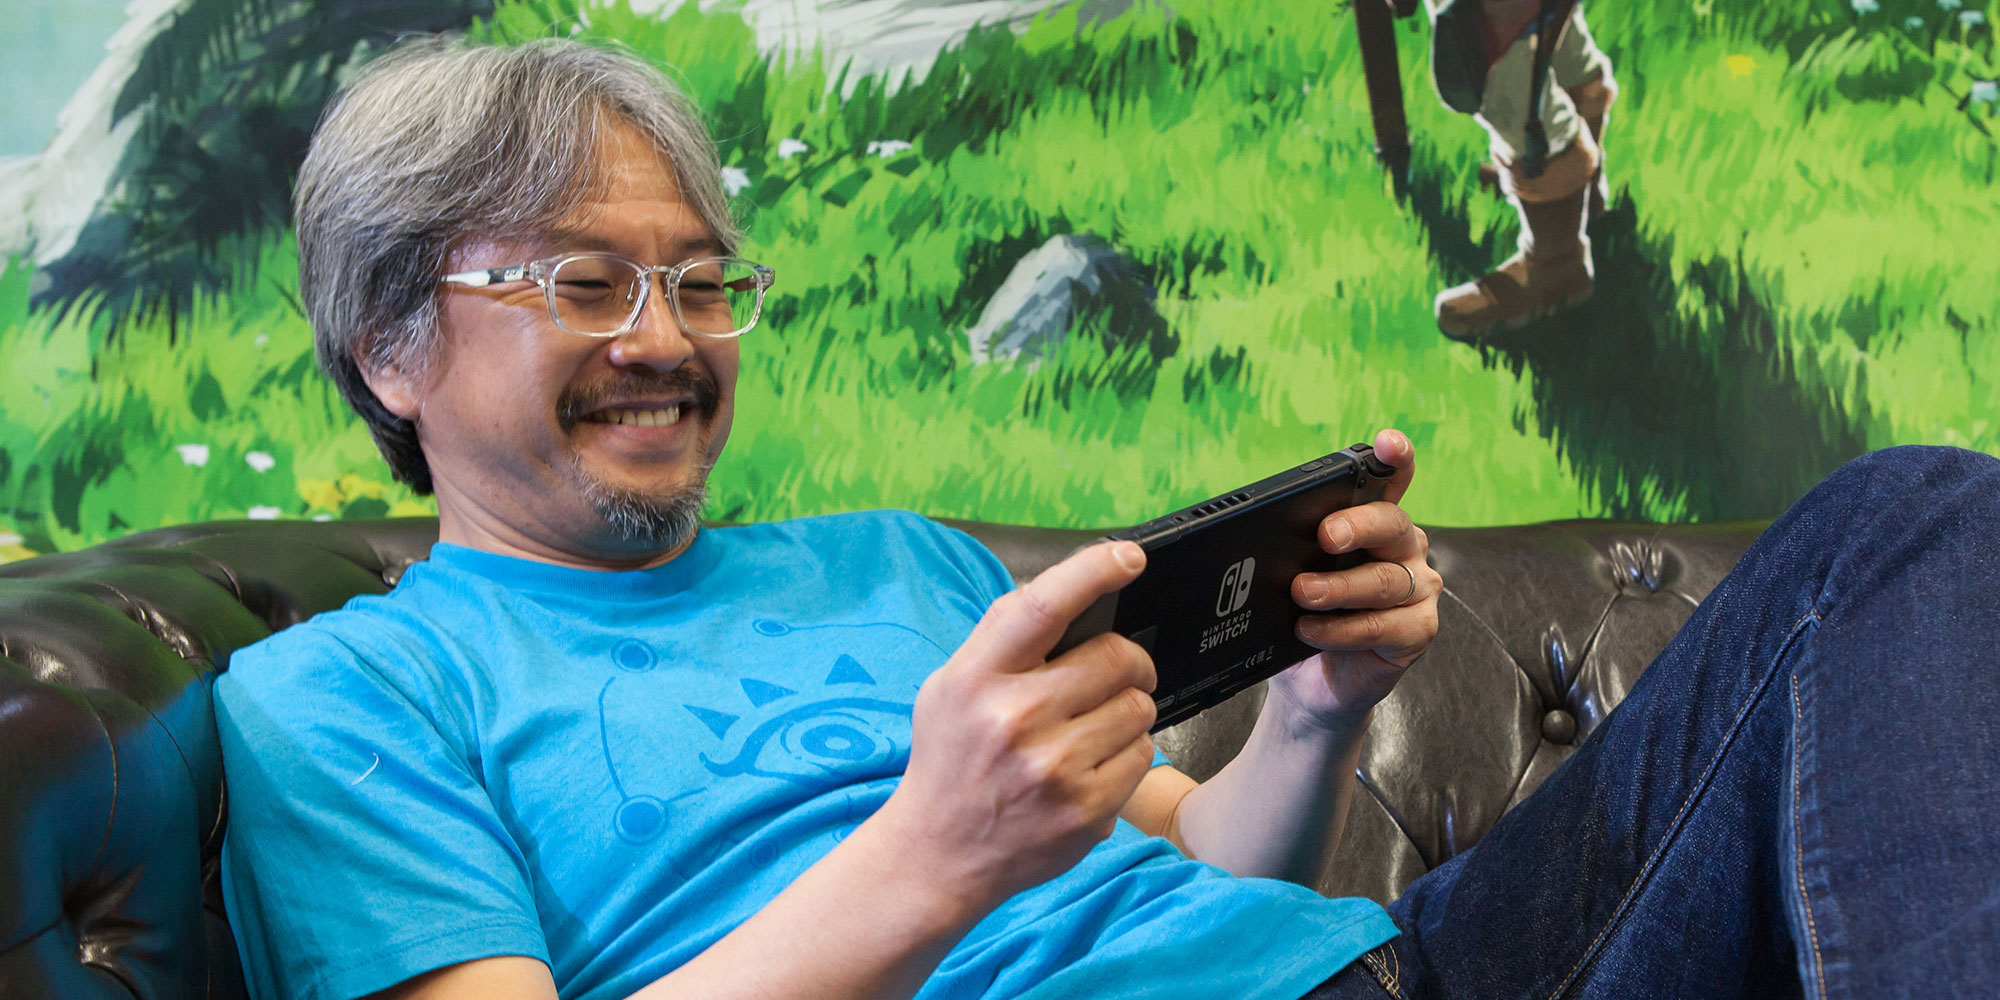 Find out some of Eiji Aonuma's favourite things from The Legend of Zelda series in our interview!